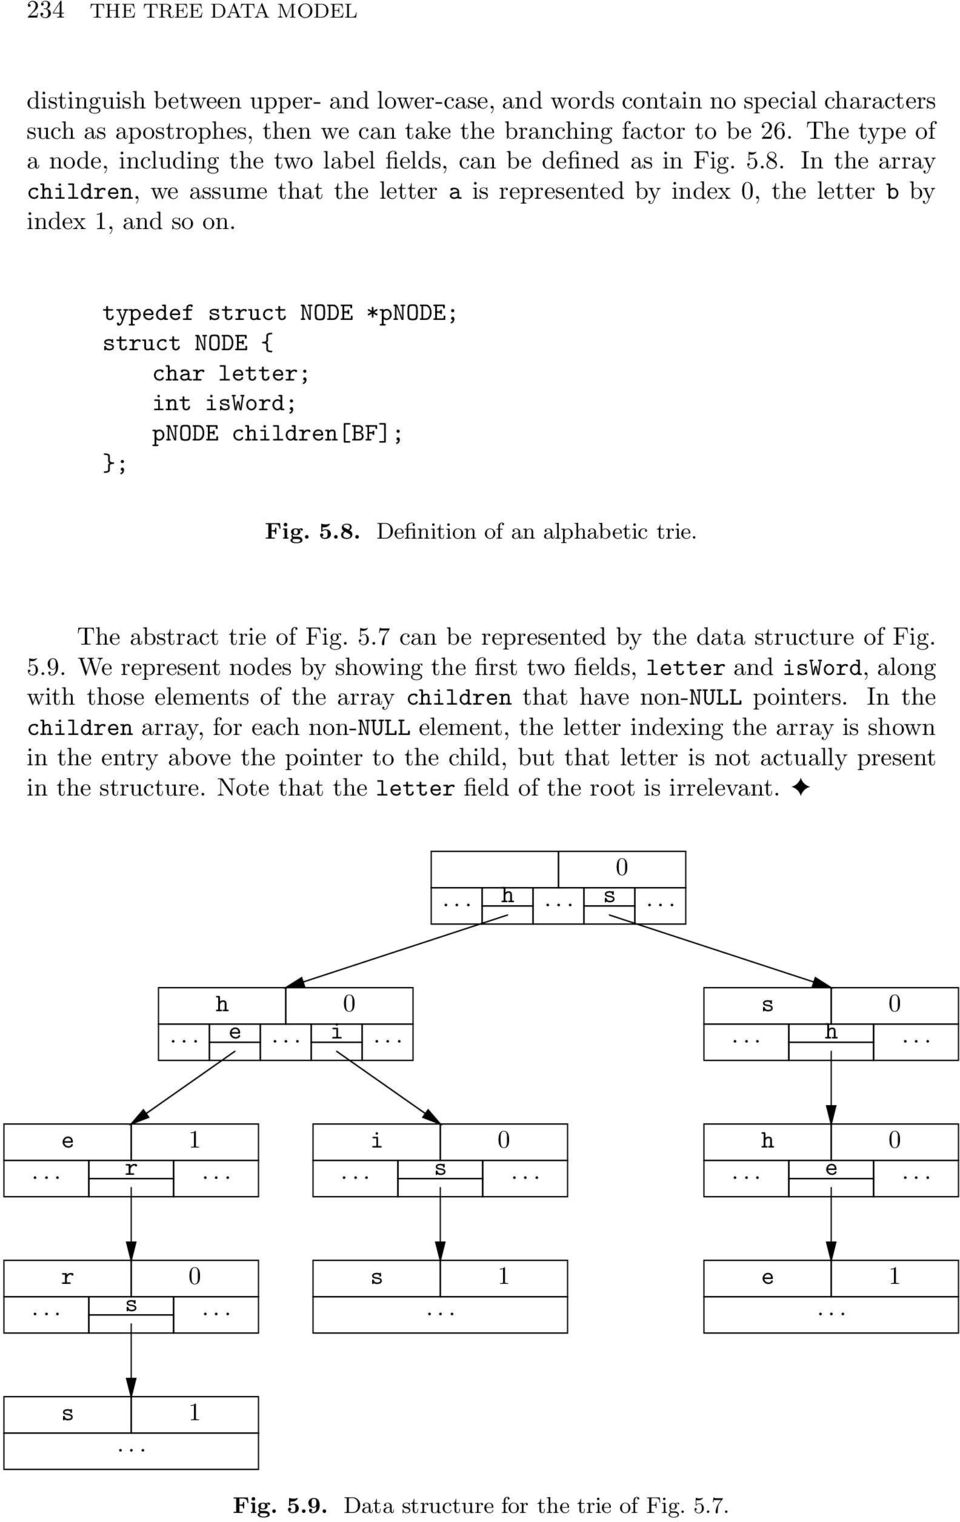 typedef struct NODE *pnode; struct NODE { char letter; int isword; pnode children[bf]; ; Fig. 5.8. Definition of an alphabetic trie. The abstract trie of Fig. 5.7 can be represented by the data structure of Fig.